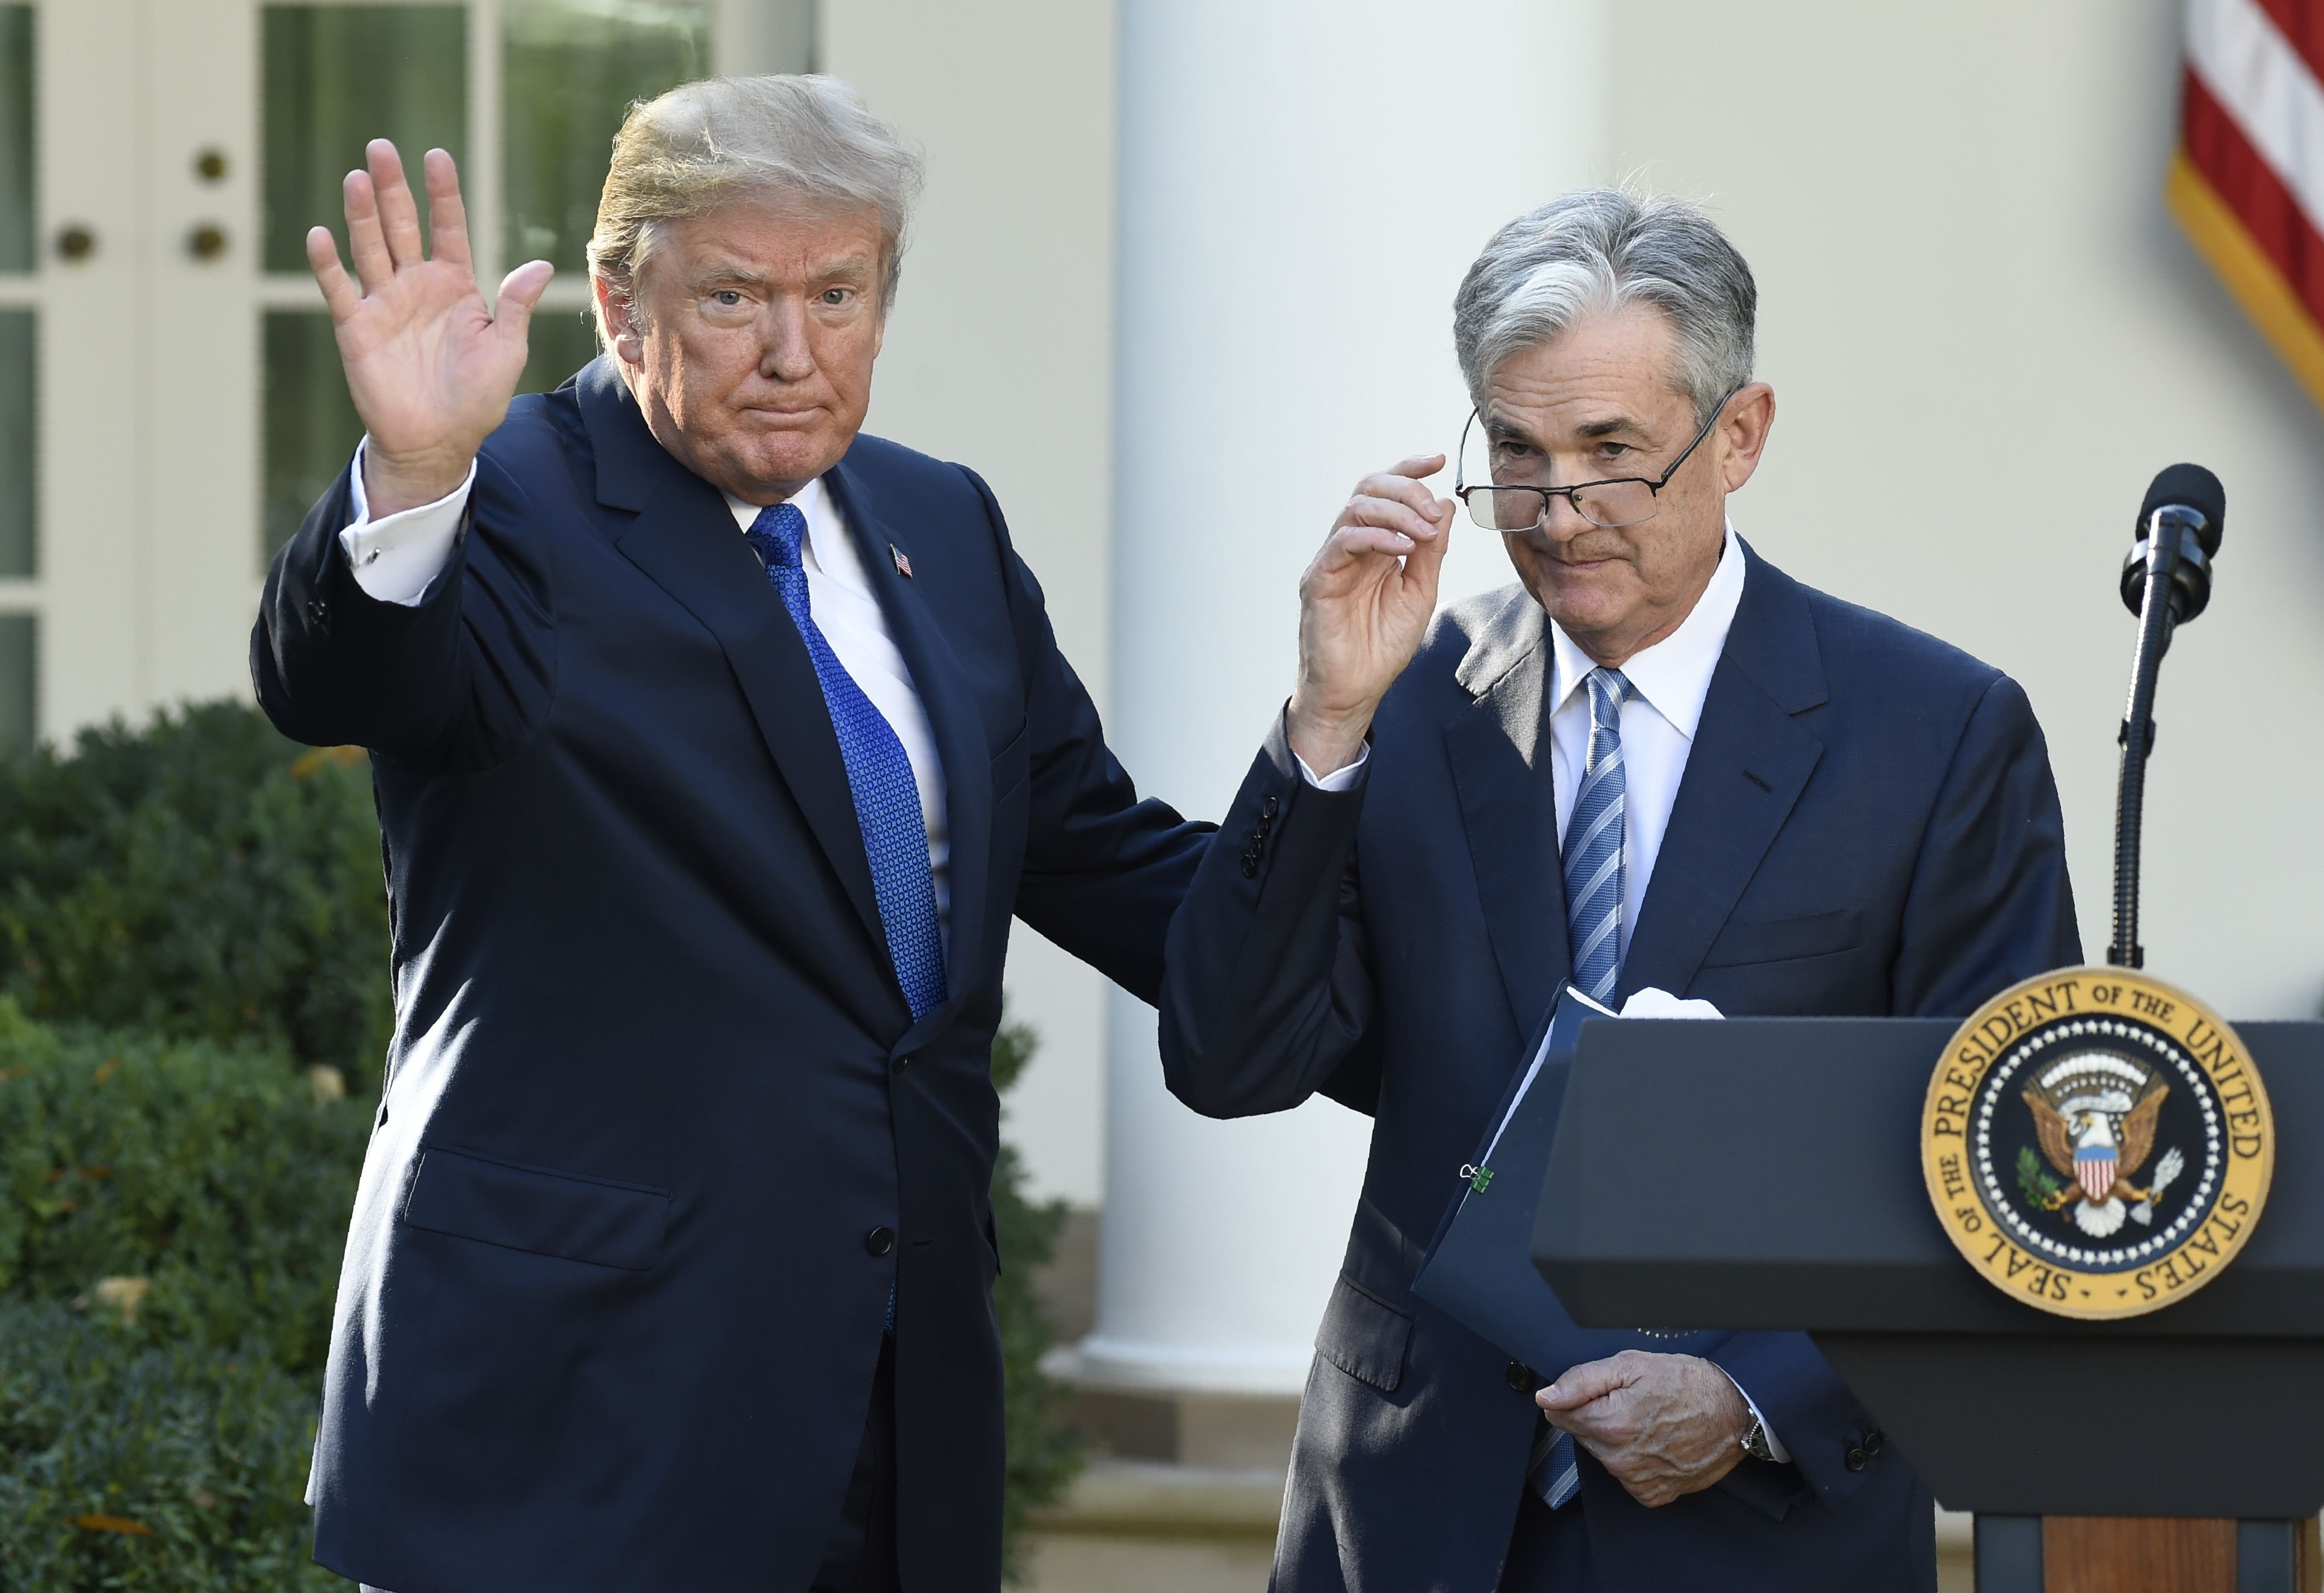 President Trump is slowly filling the empty seats on the Federal Reserve Board.